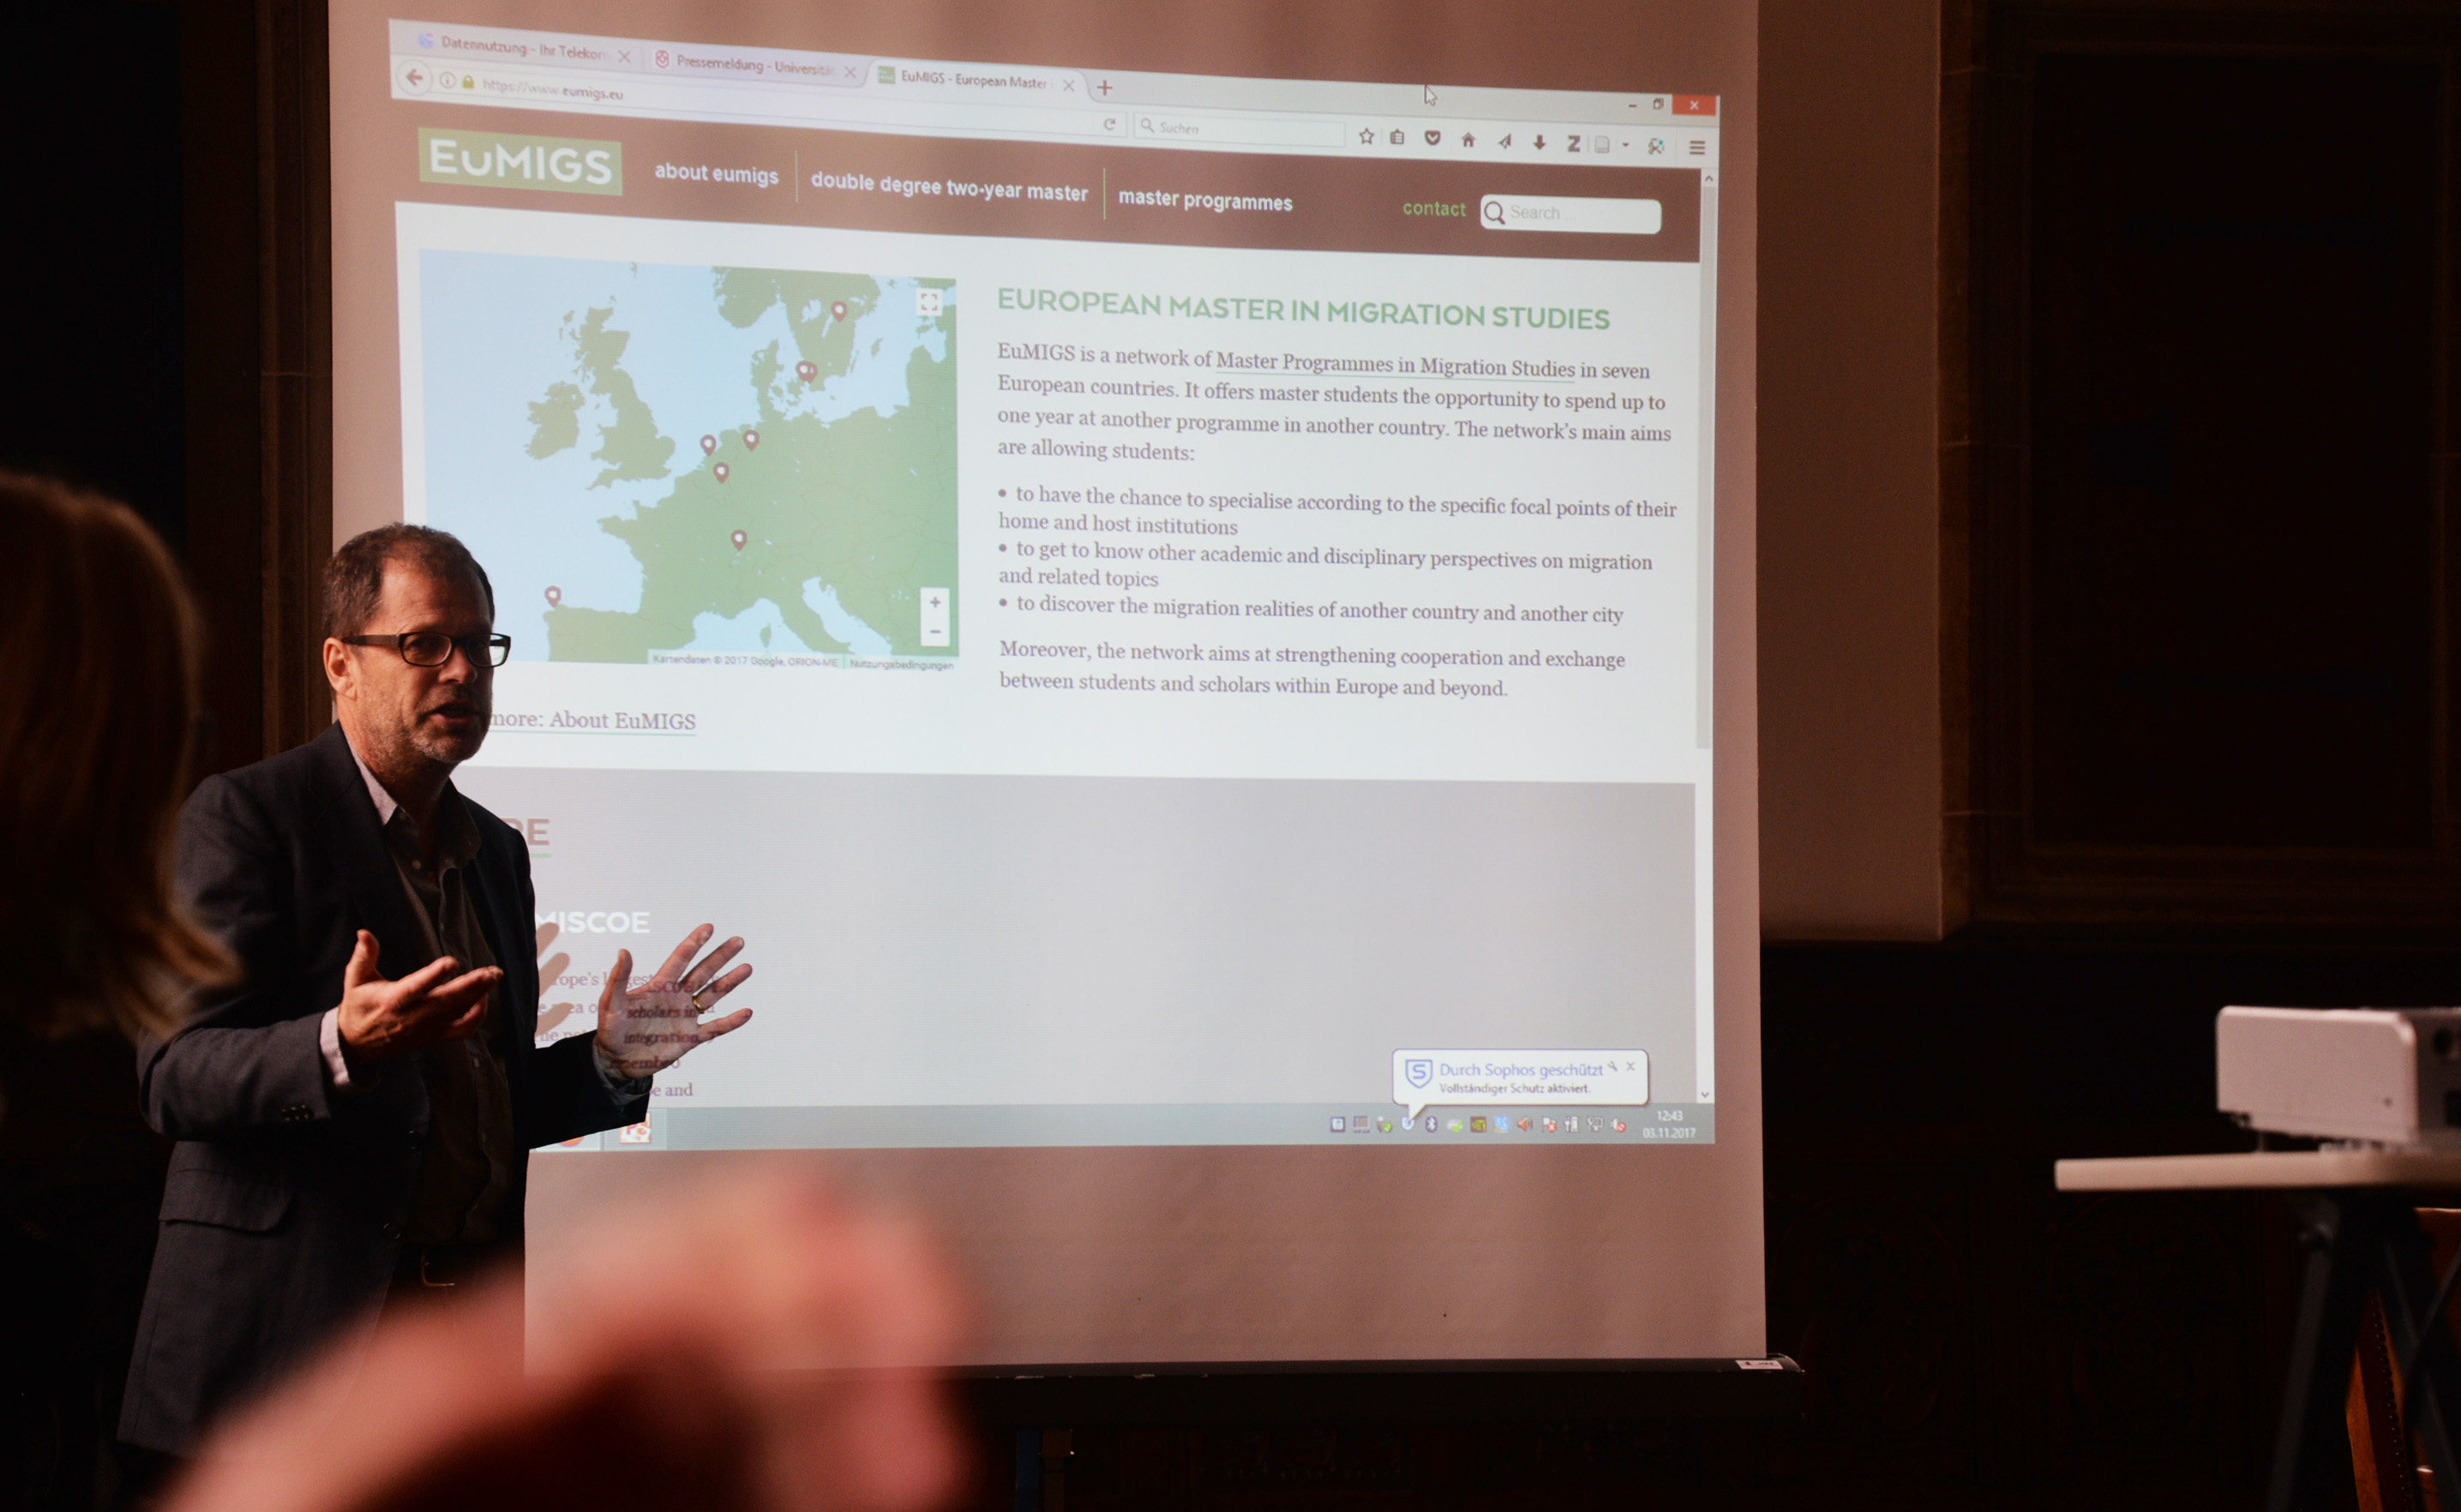 Jens Schneider launching the EuMIGS website